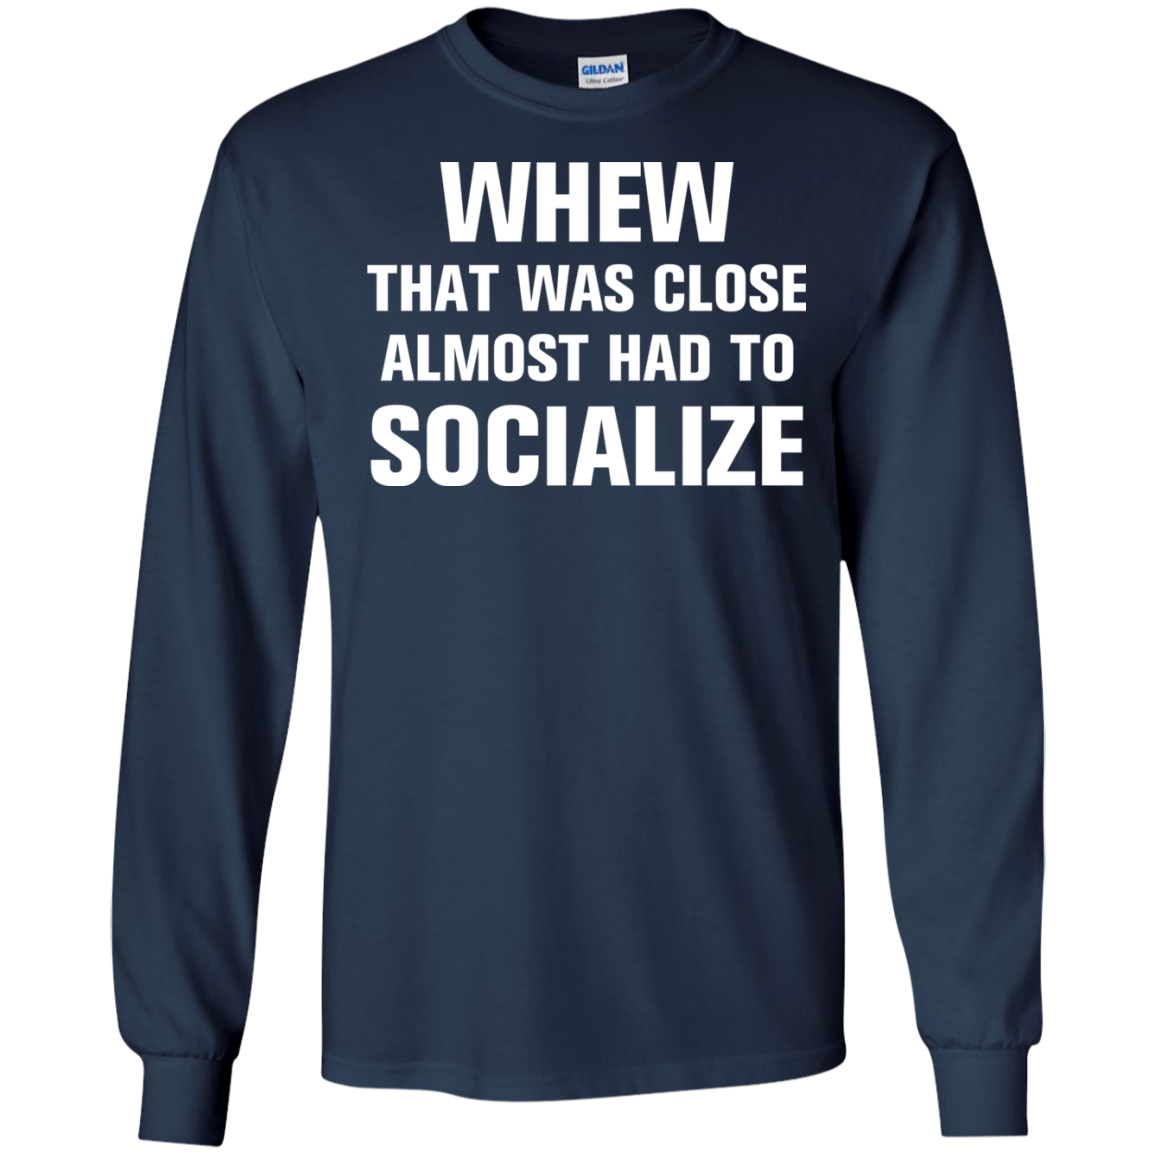 Whew that was close almost had to socialize tshirt, vneck, tank, hoodie